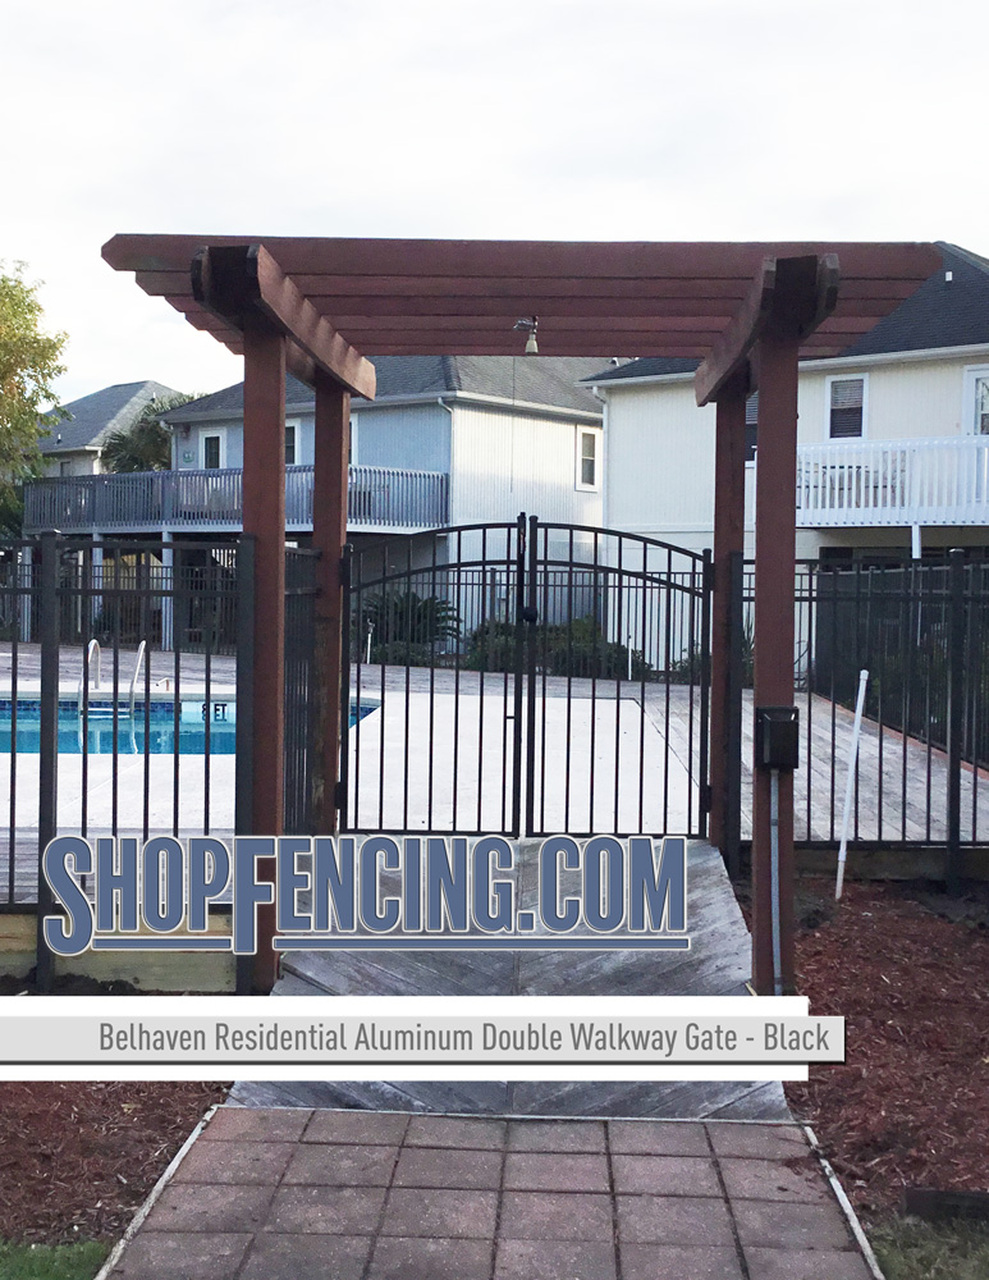 Residential Belhaven Aluminum Double Walkway Gate - Rainbow Arch From ShopFencing.com